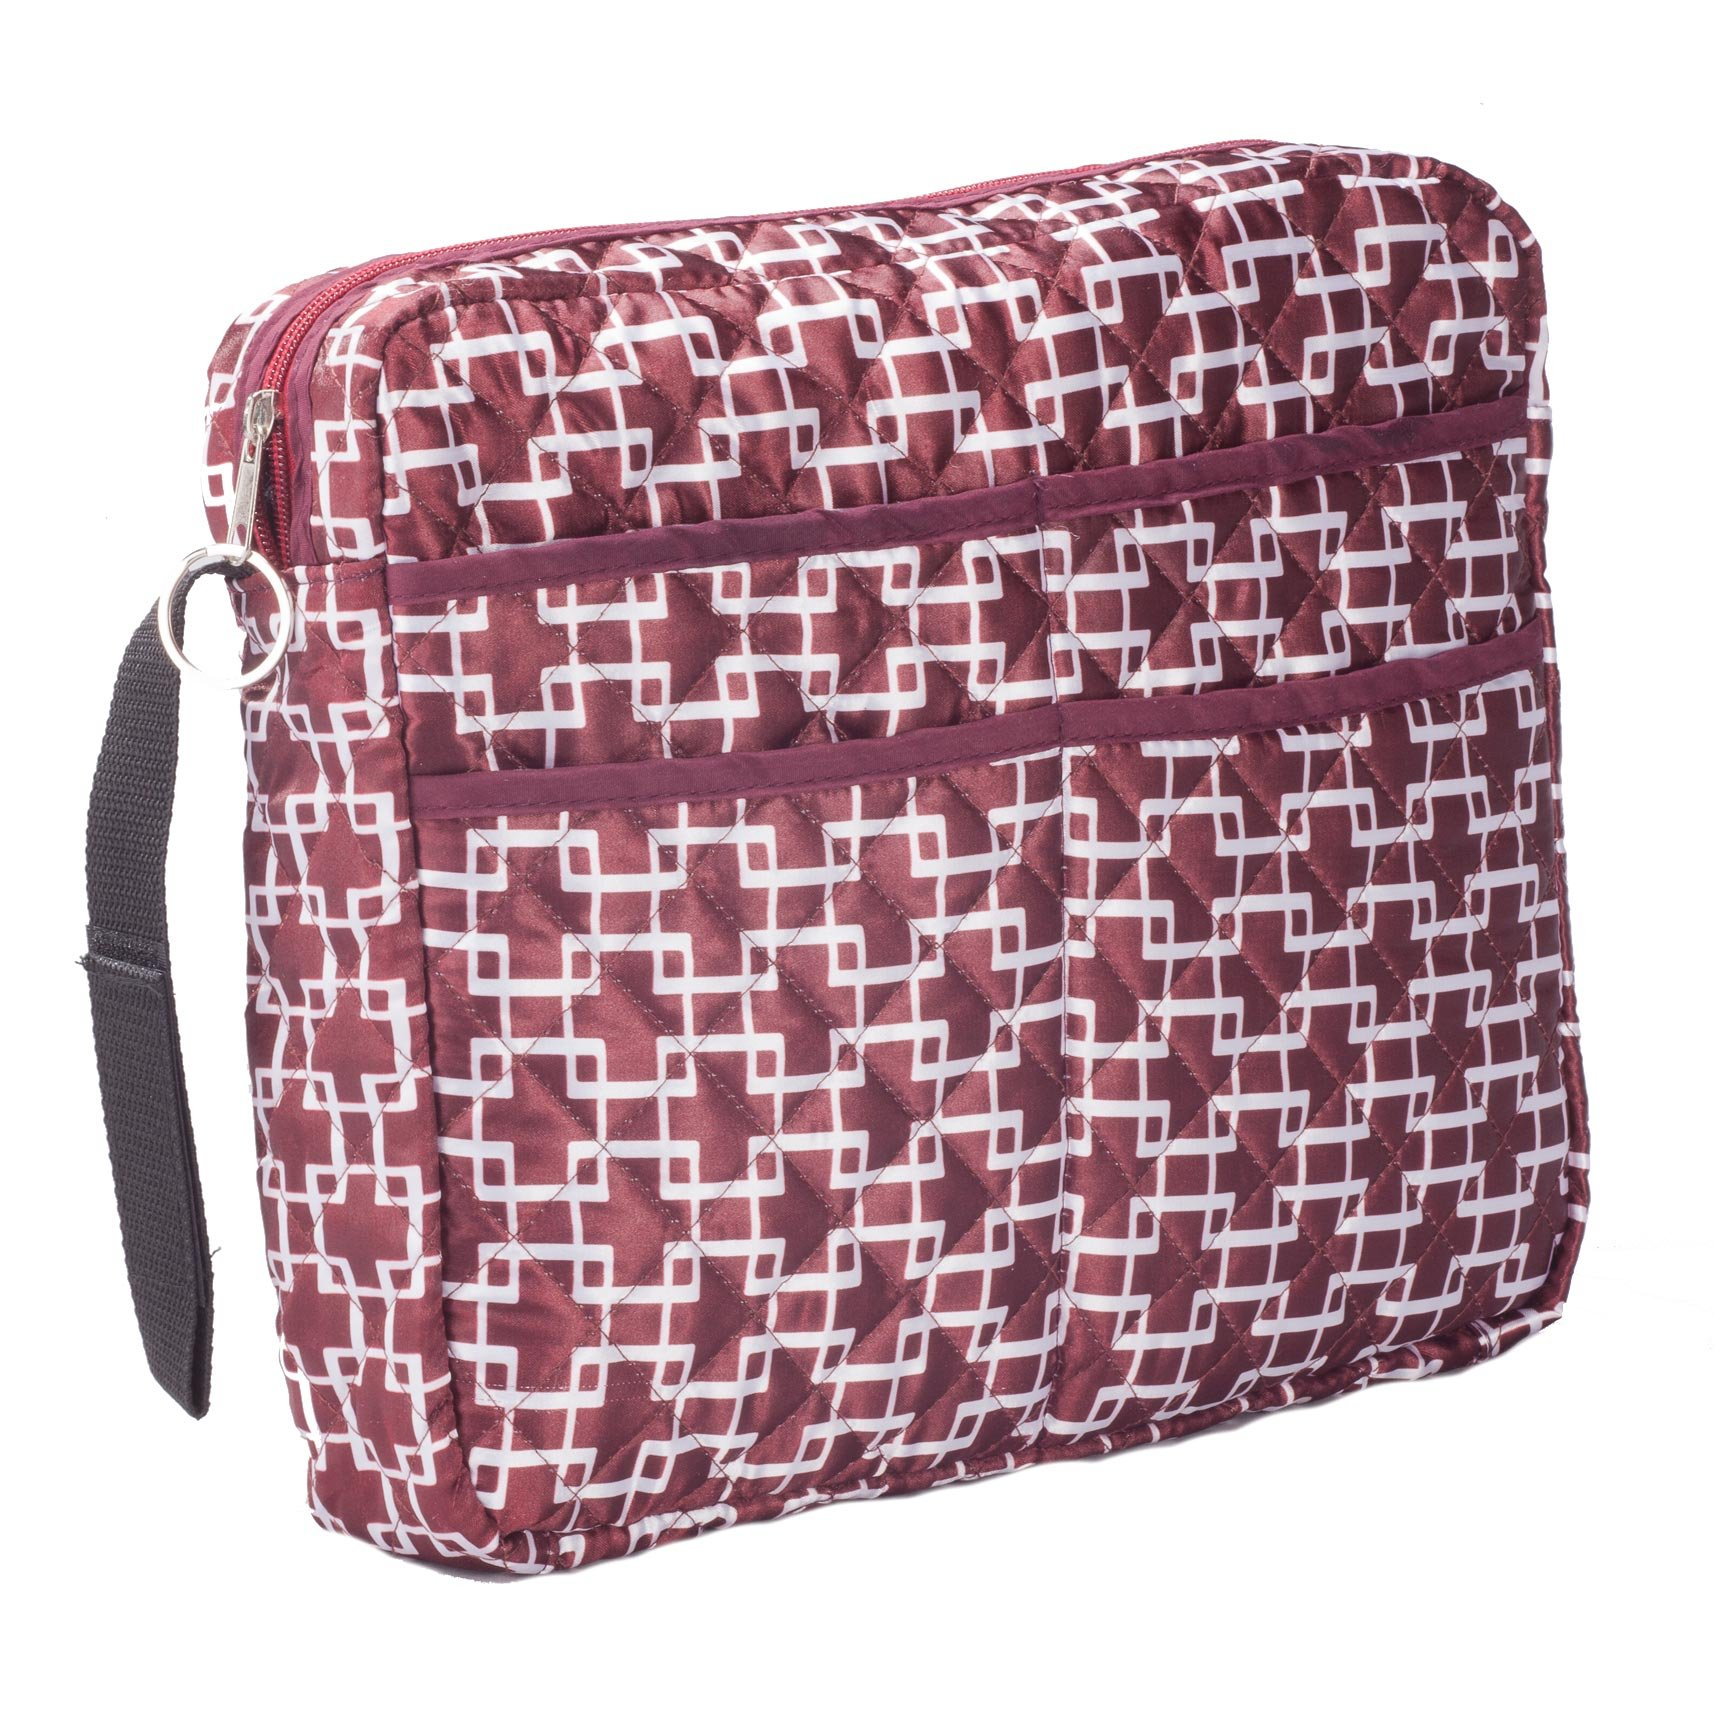 LAMINET - Mobility & Daily Living AIDS (Walker/Wheelchair Bag, Burgundy) by LAMINET